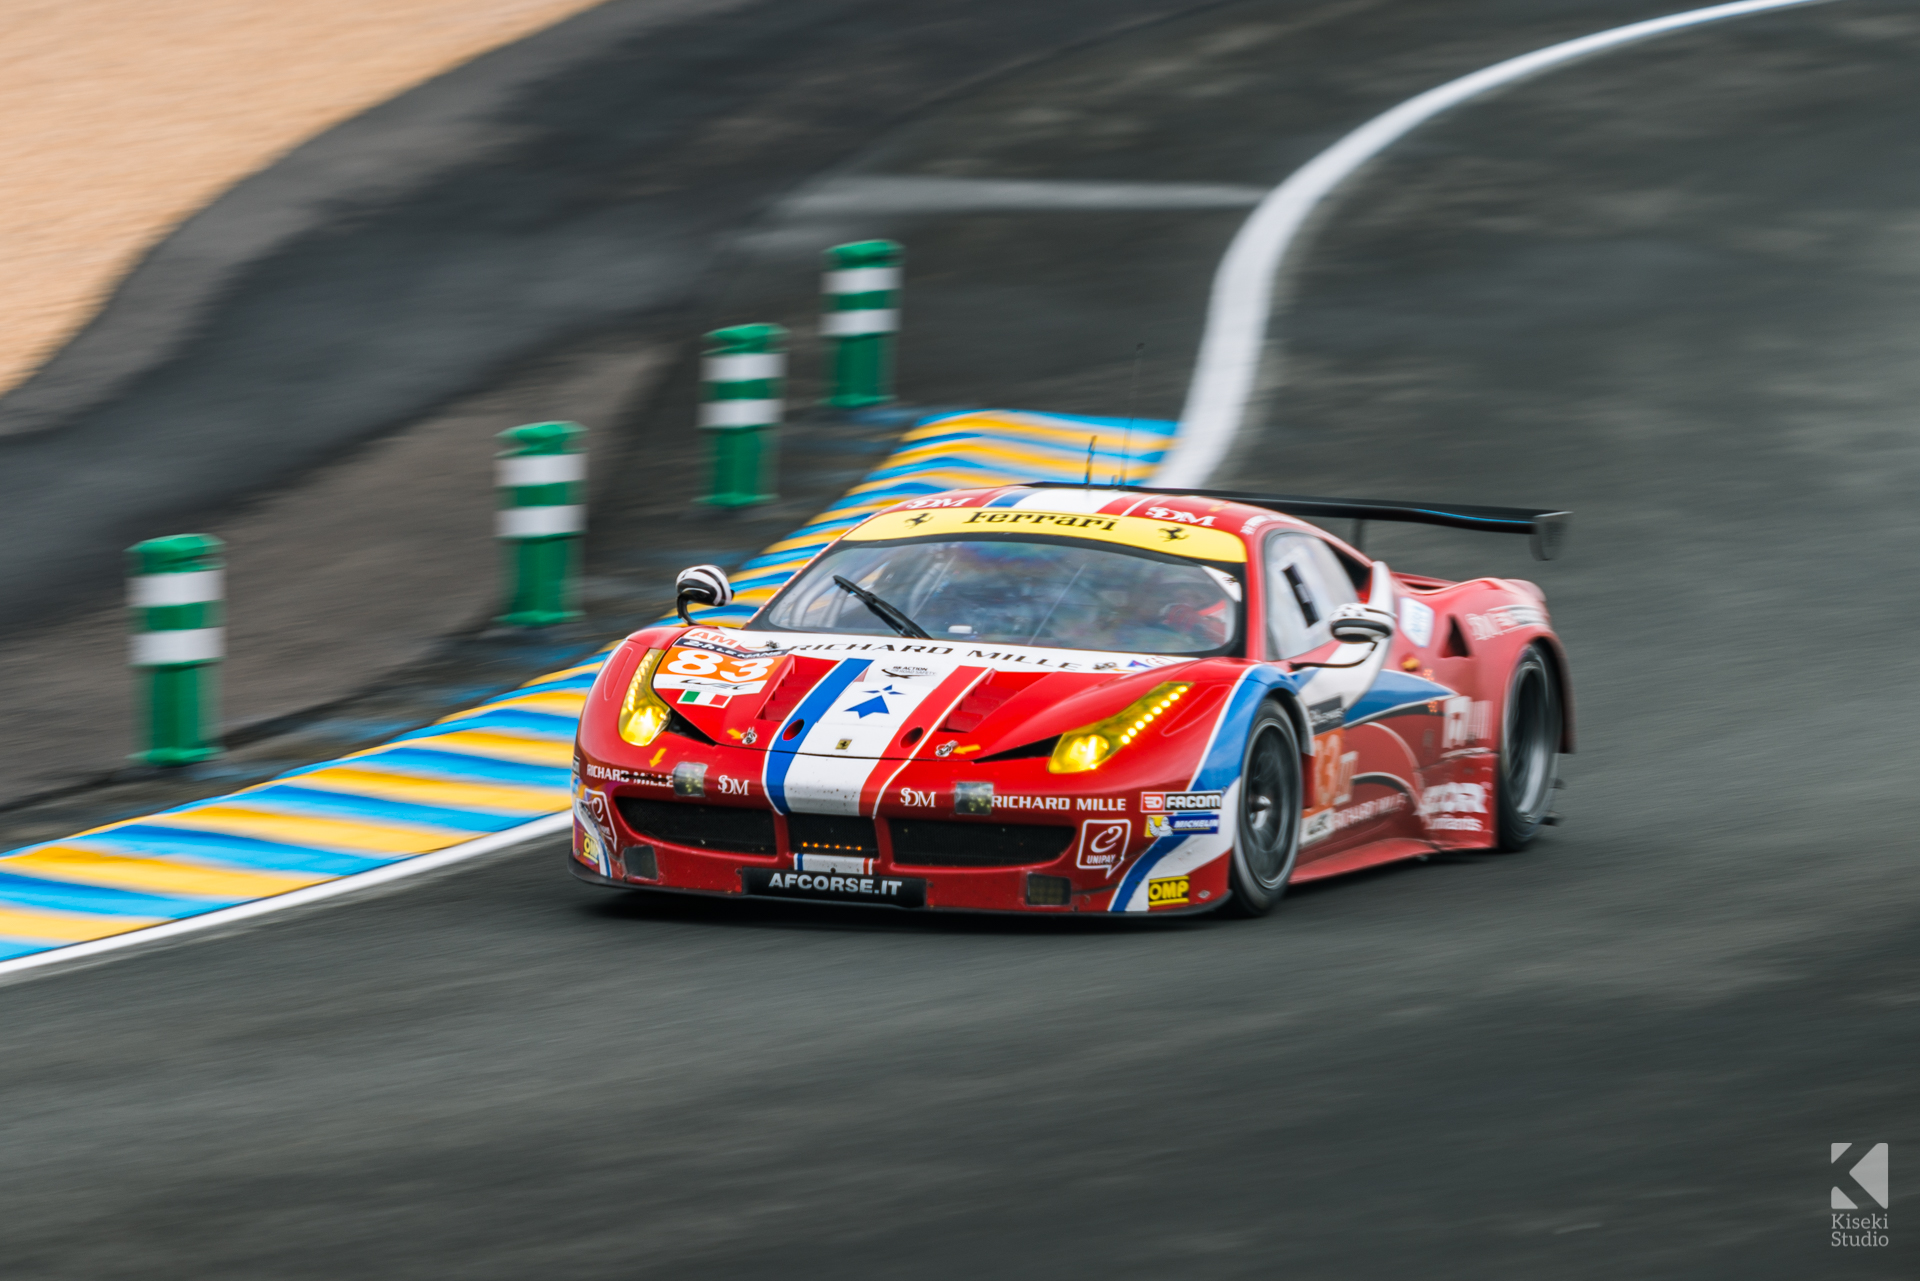 24 Hours of Le Mans - Ferrari 458 GT2